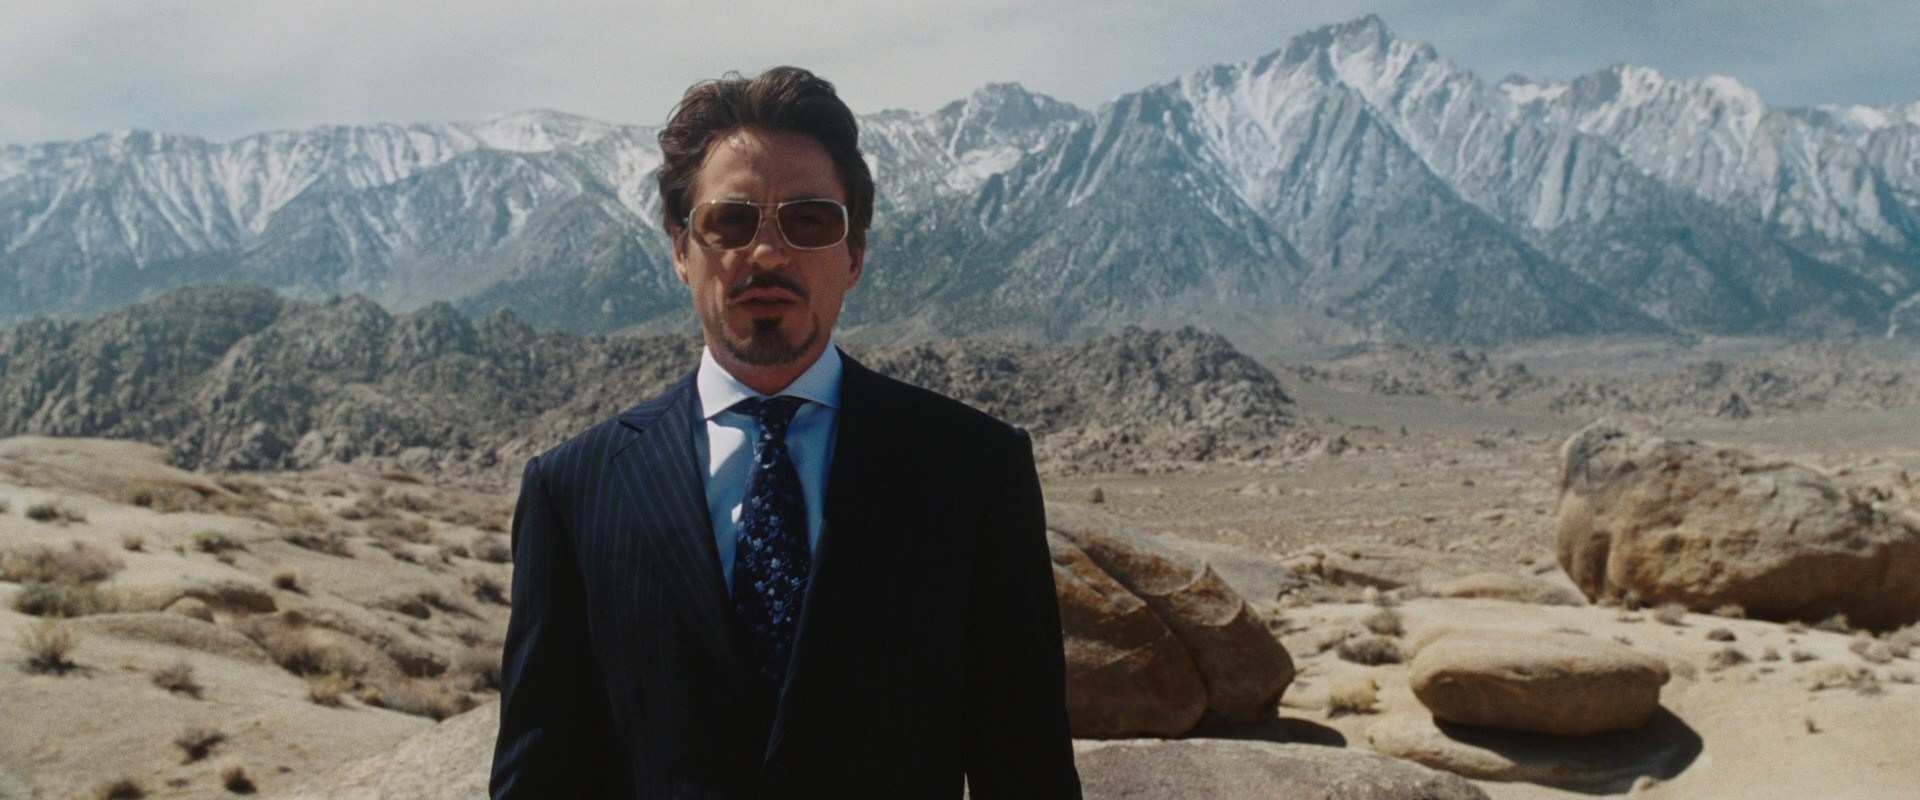 Iron Man Filming Locations | Kunar Province